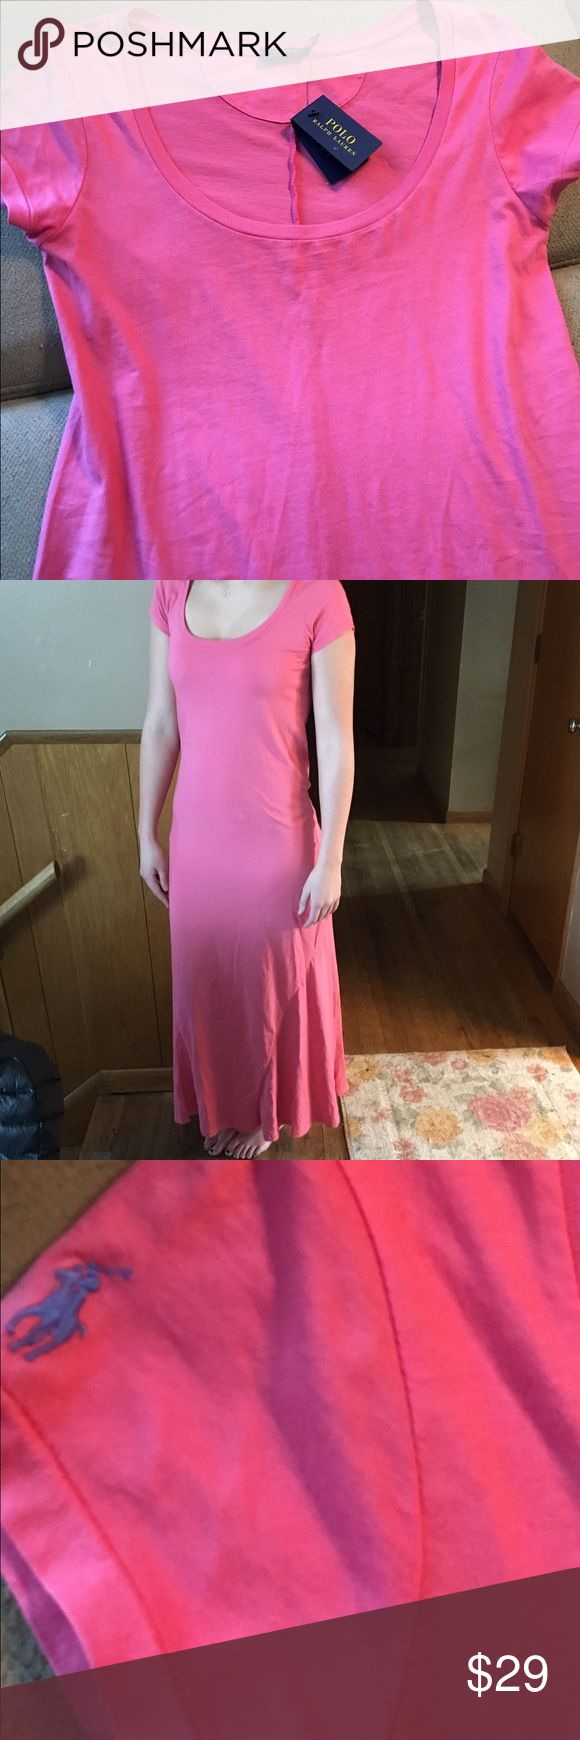 Polo Tee Shirt Maxi Get ready for the winter getaway. This pink/coral tee shirt maxi made by Ralph Lauren Polo is perfect!  Easy breezy and attractive. NWT Polo by Ralph Lauren Dresses Maxi